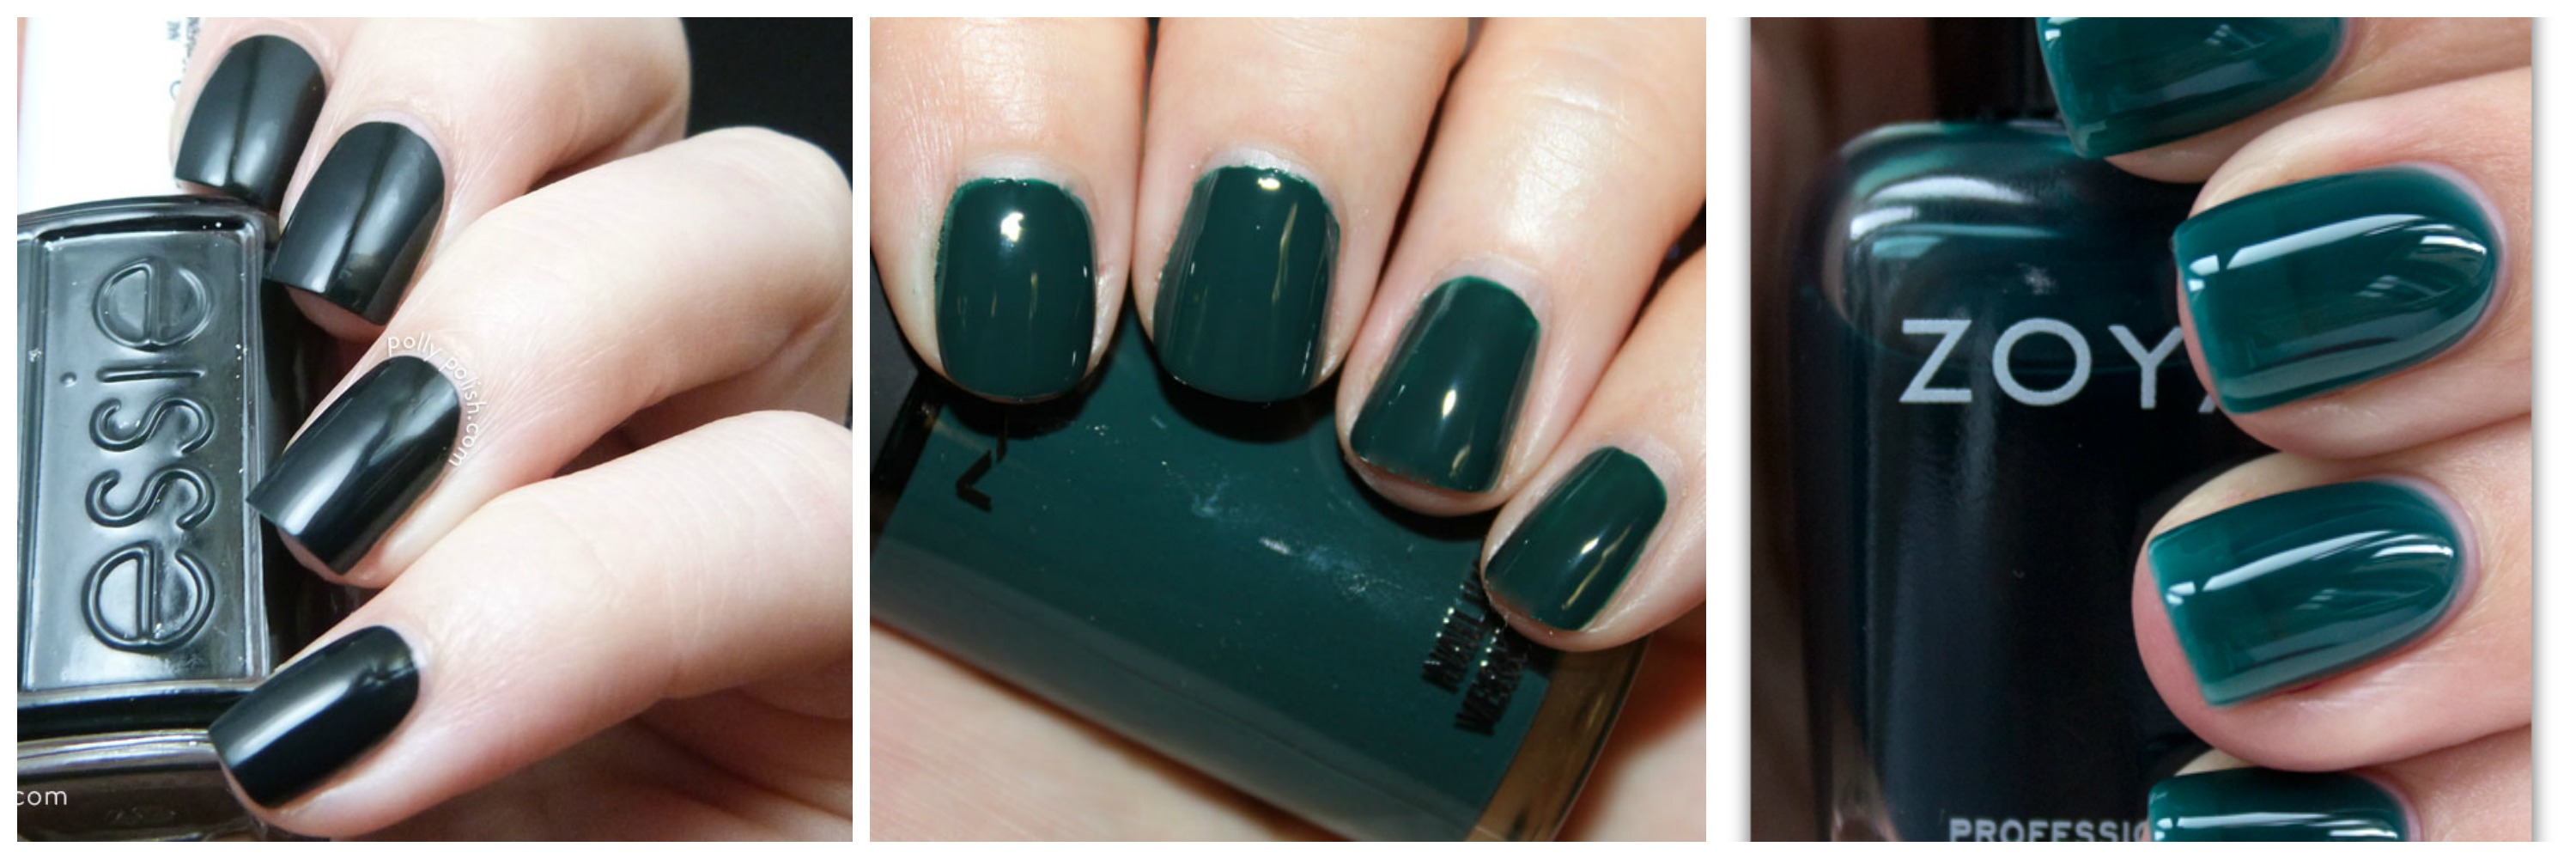 SD Beauty Review: Chanel Le Vernis Vert Obscur Nail Polish - Style ...